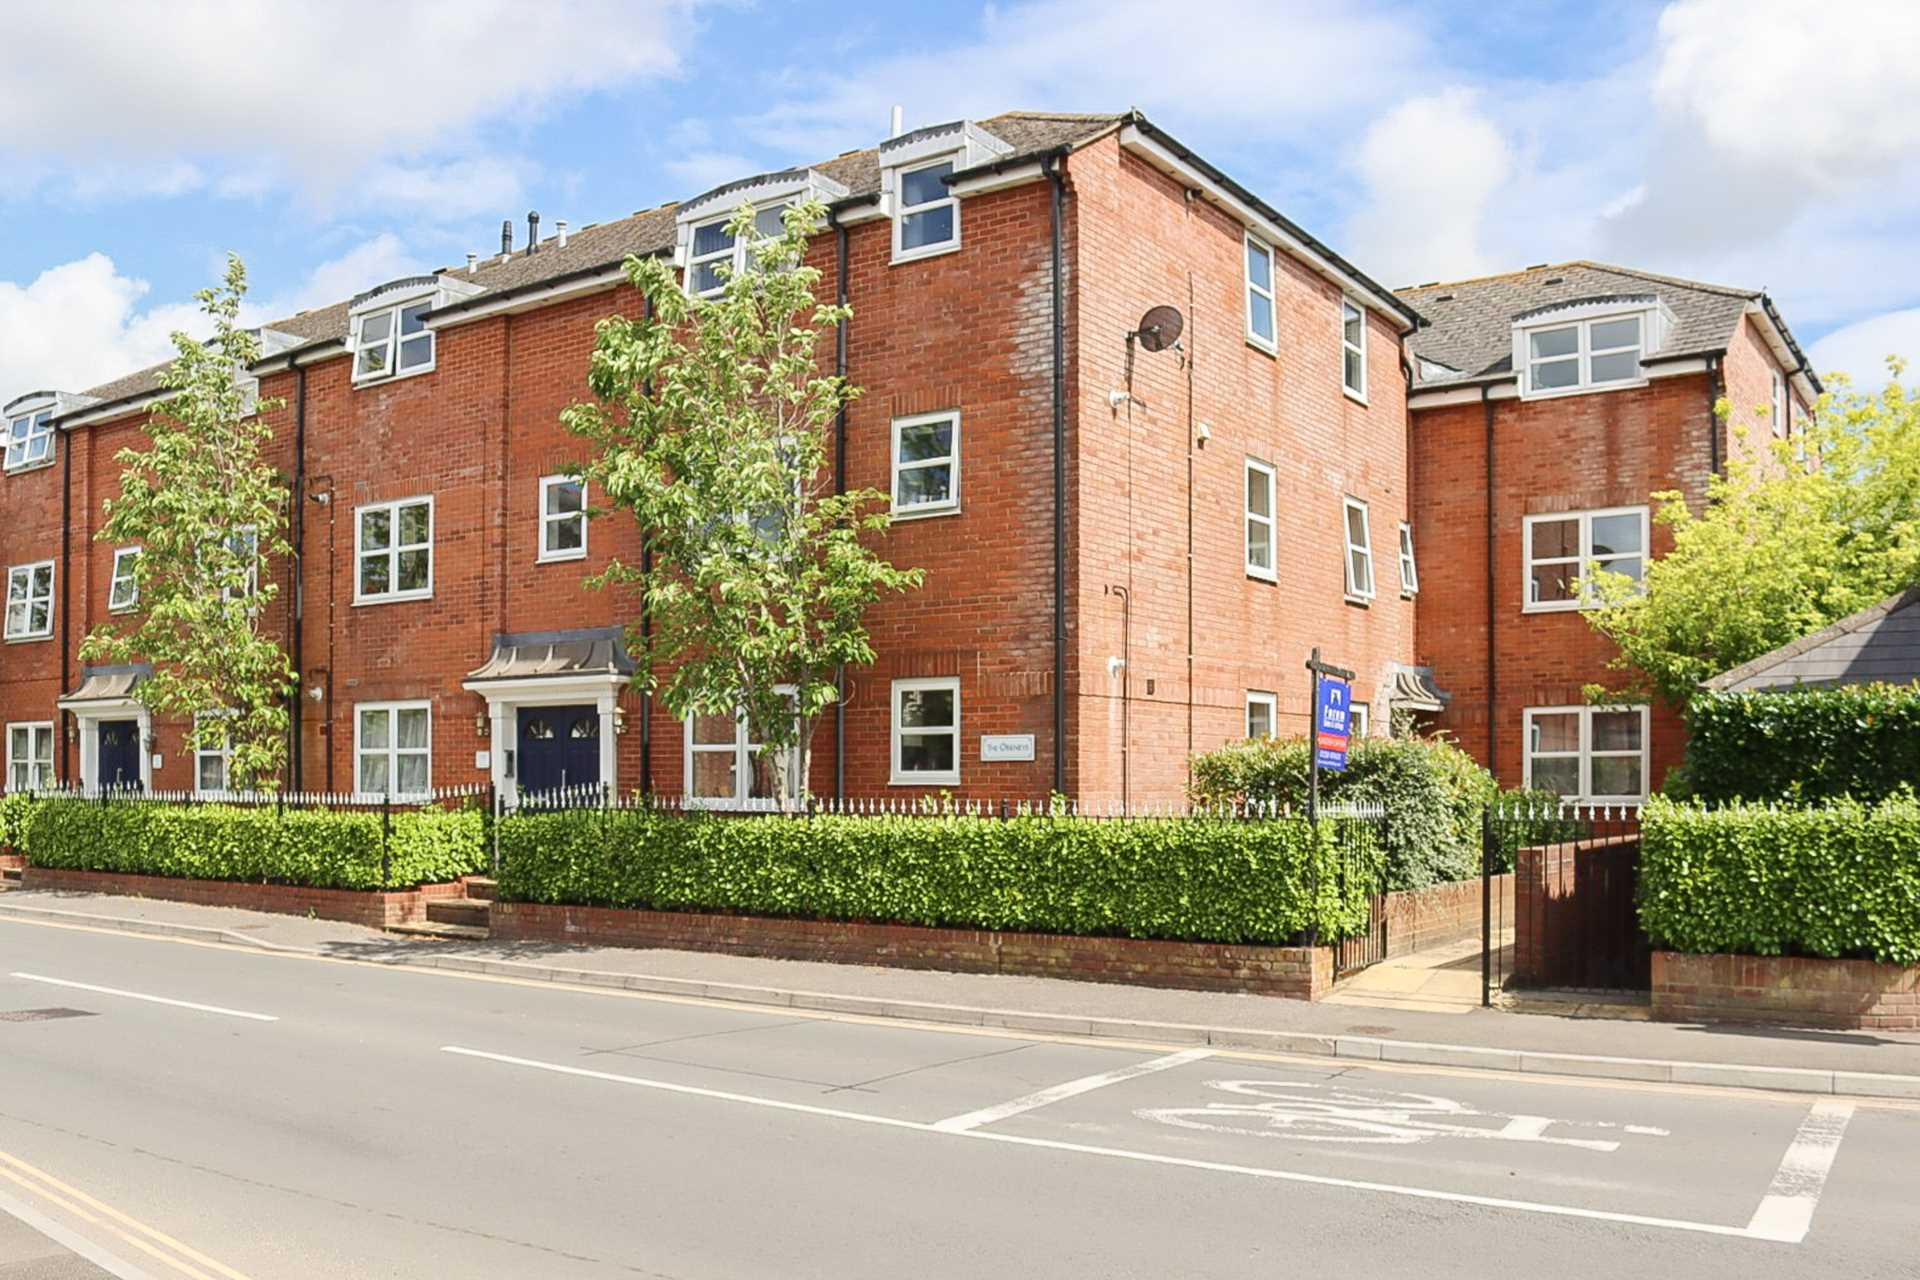 2 bed flat for sale in The Orkneys, Blandford Forum, Blandford Forum 0